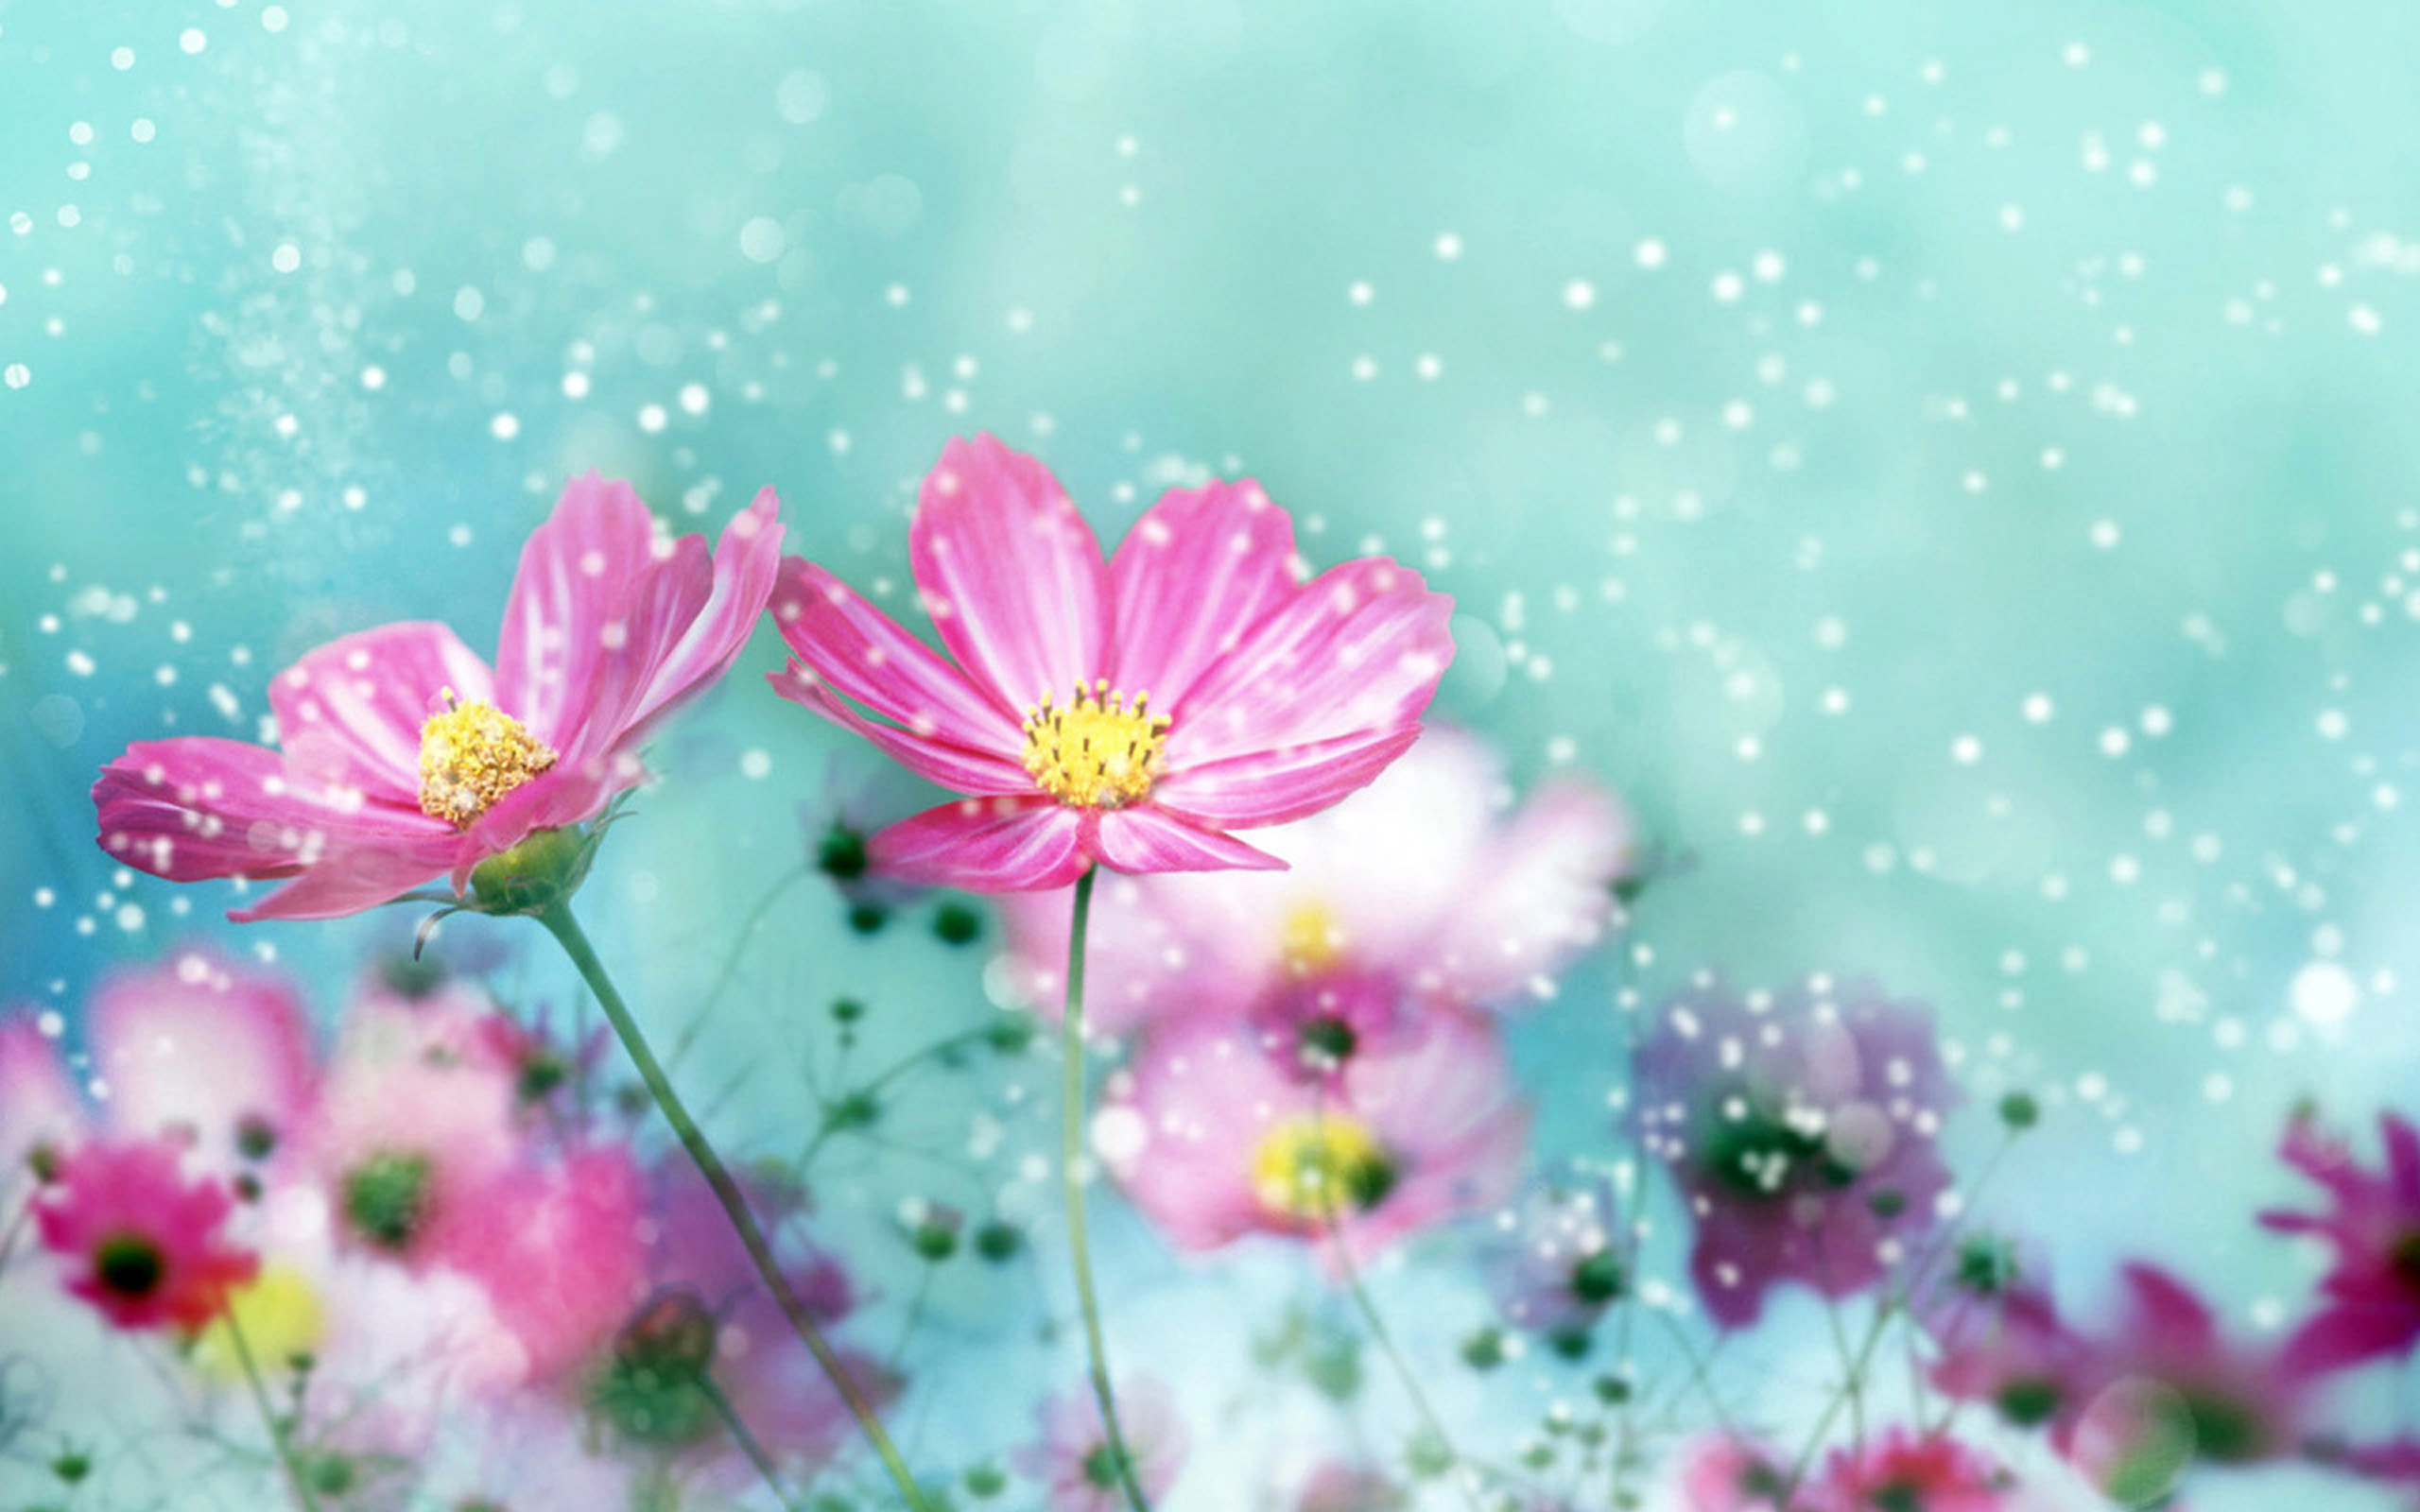 cute flower backgrounds   AmusingFuncom Pictures and Graphics for 2560x1600